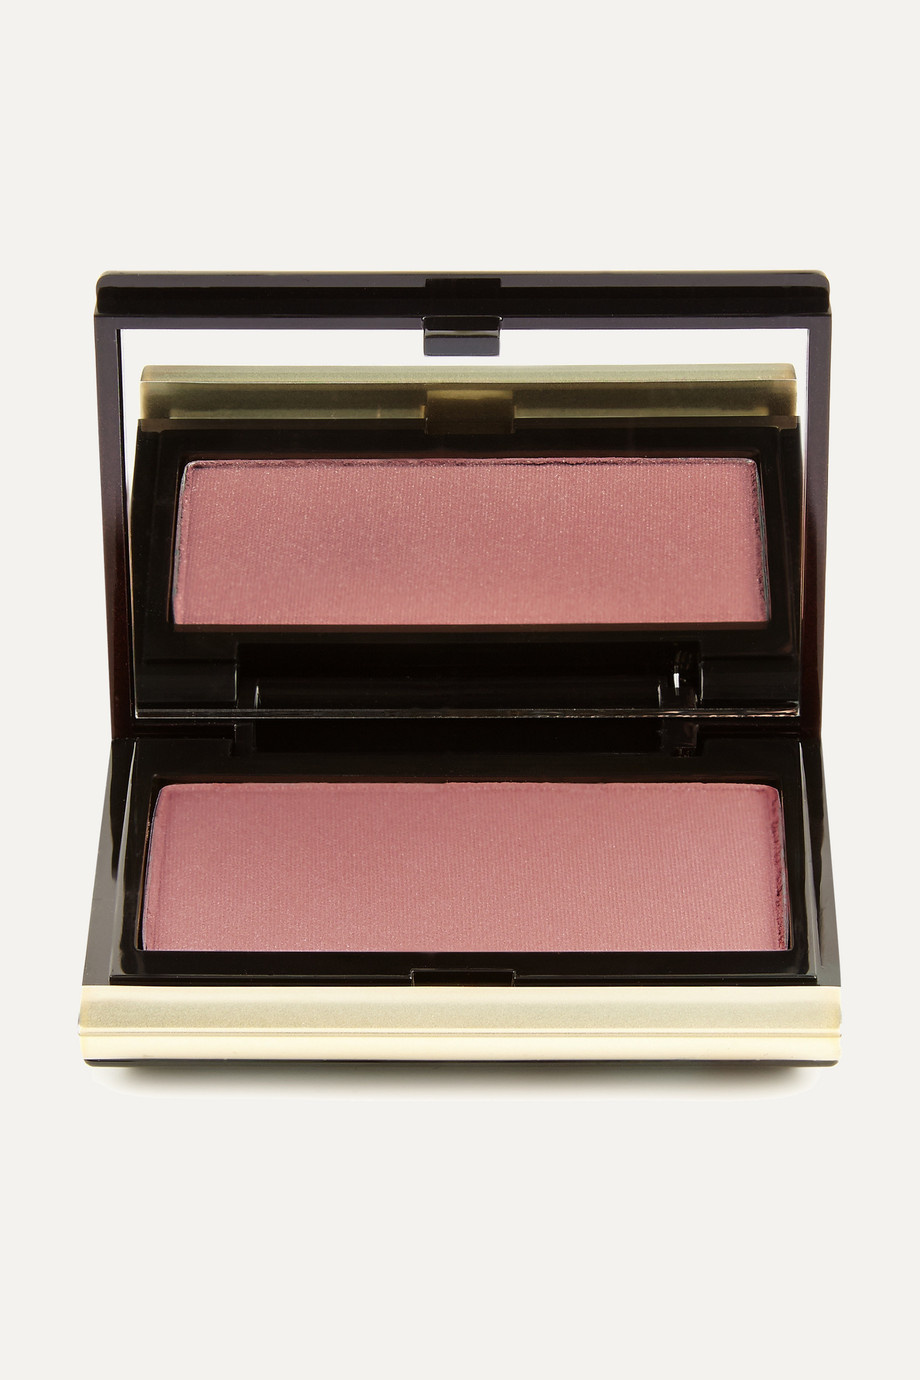 The Pure Powder Glow - Helena, by Kevyn Aucoin